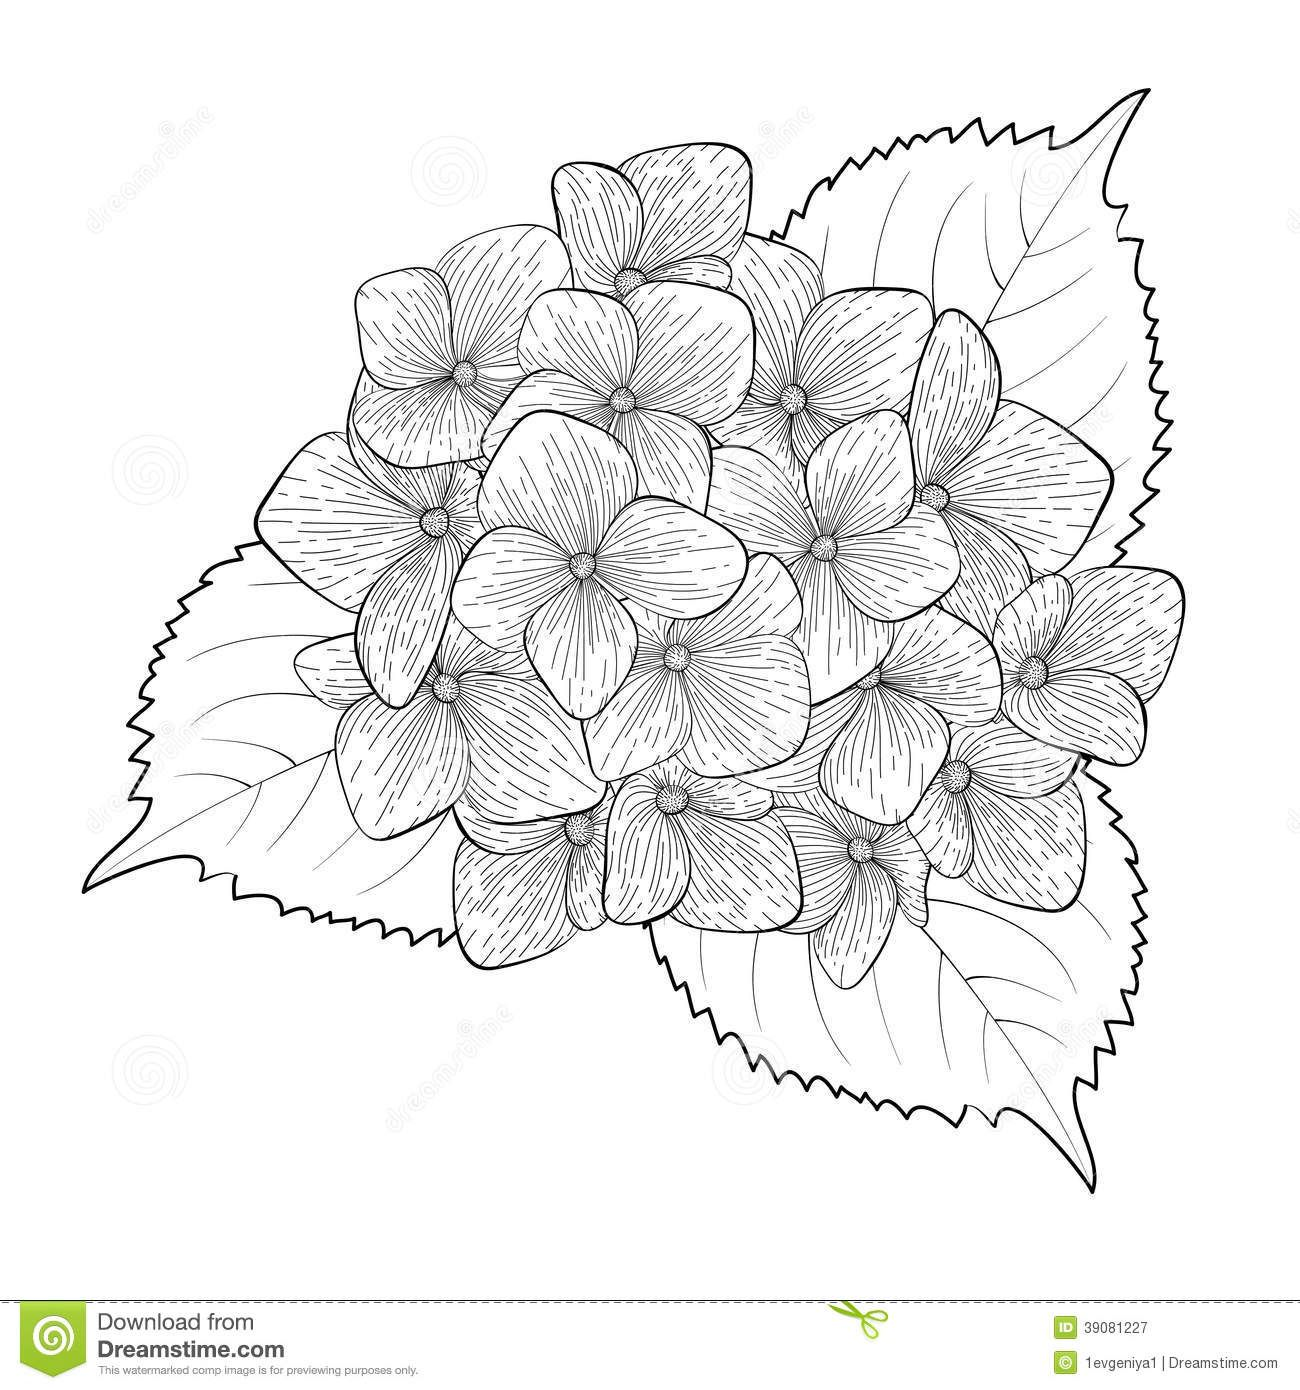 Hydrangea flower coloring pages - Hydrangea Glass Art Google Search